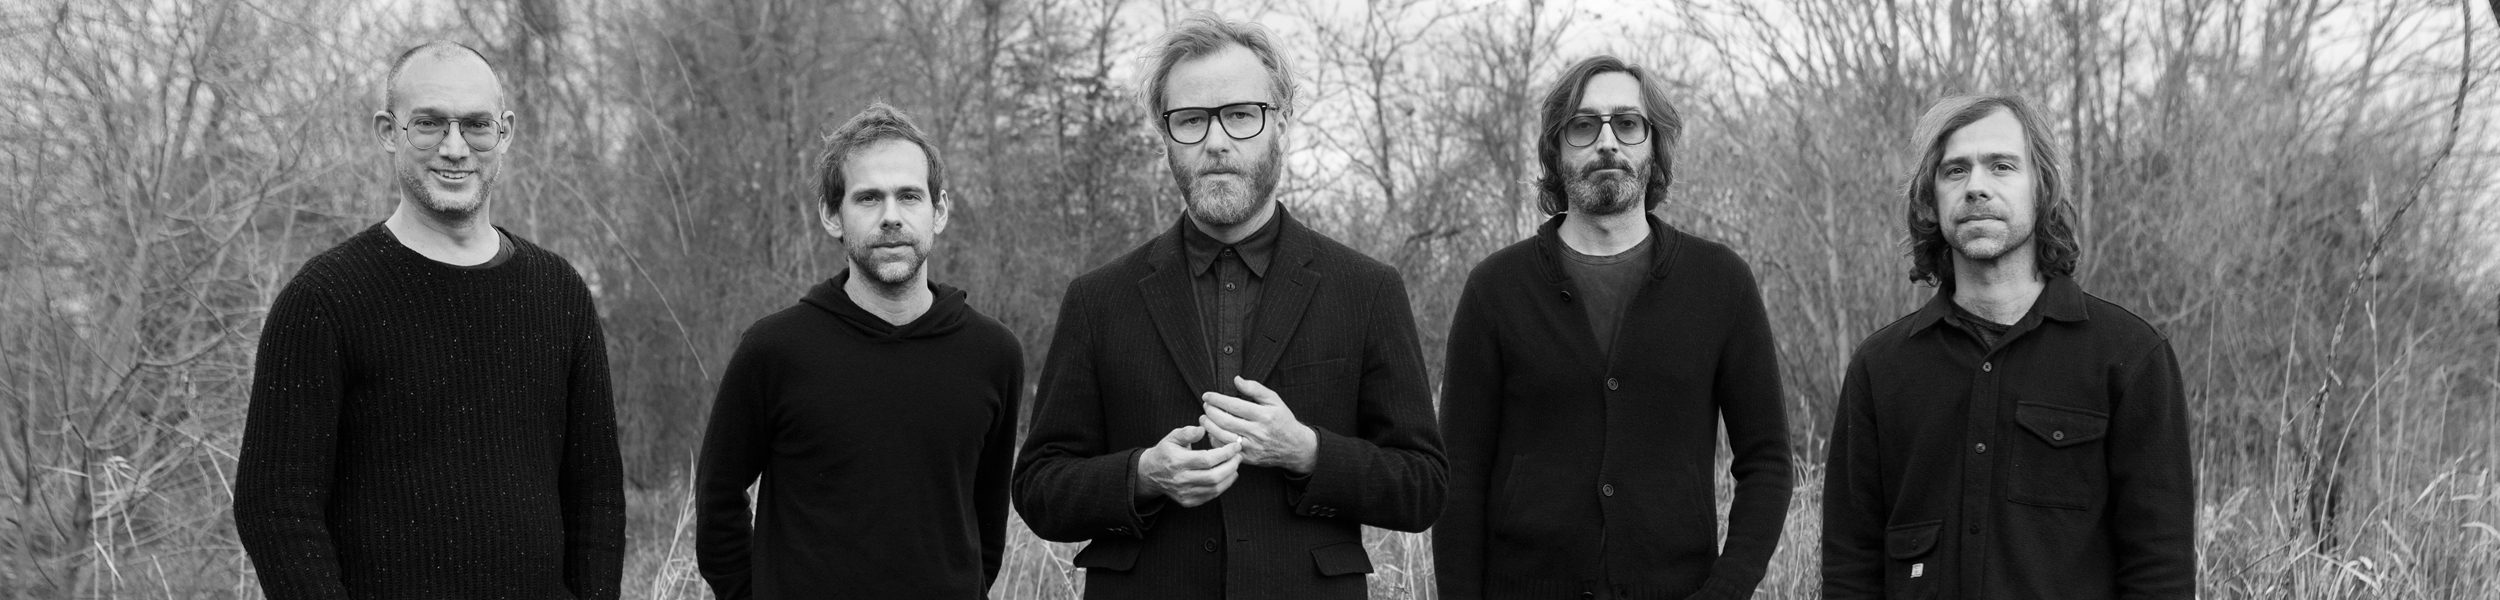 The National - 'A Lot Of Sorrow' Boxed Set